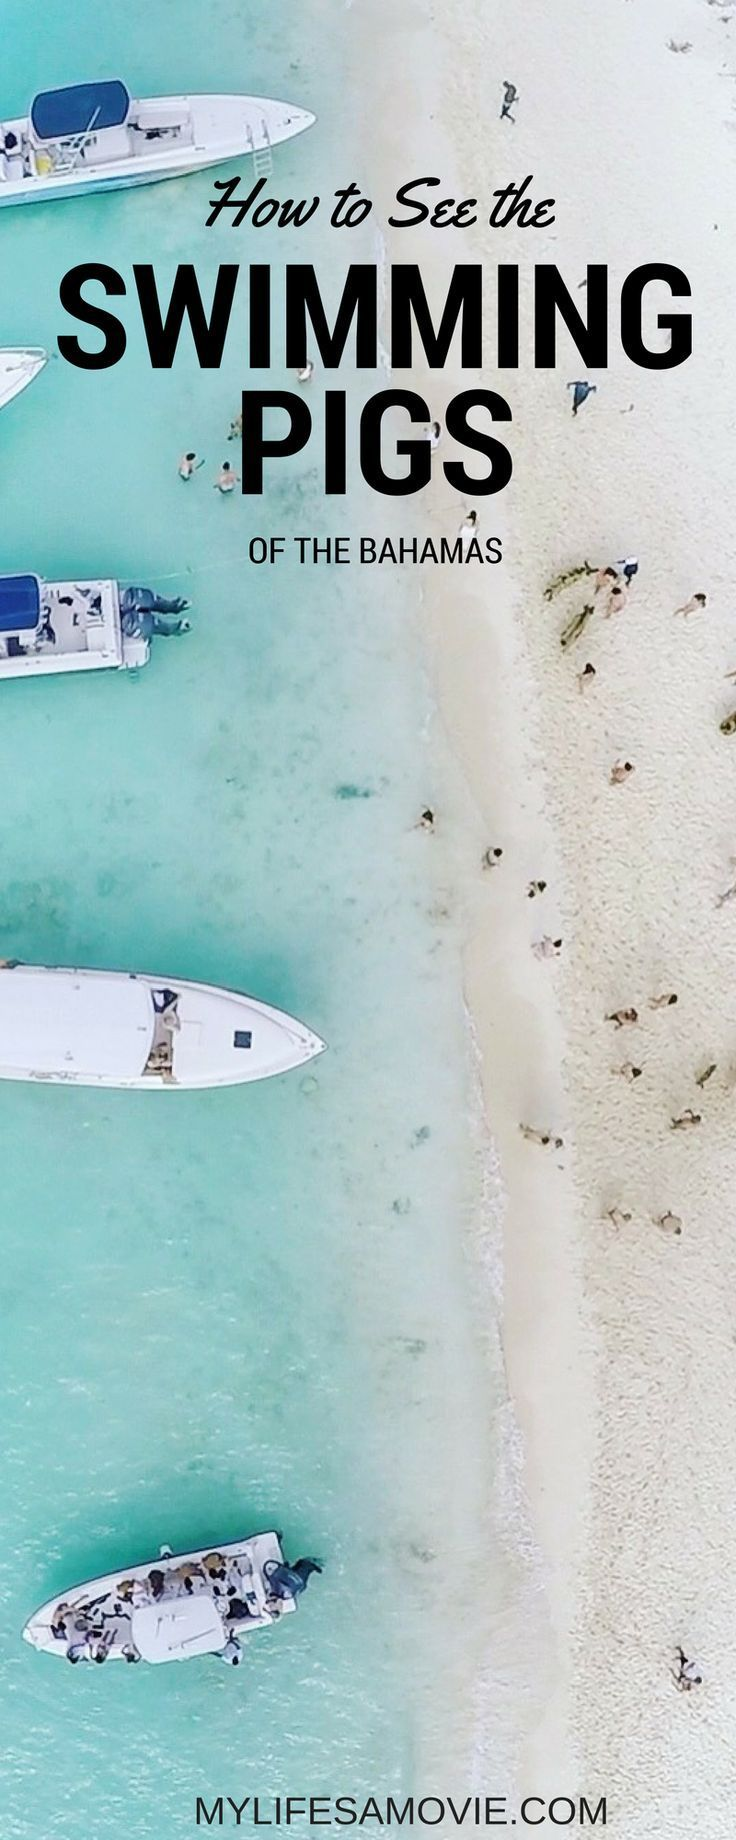 How to See the Swimming Pigs of the Bahamas! A full guide to getting to the Exumas and Staniel Cay, where to stay, and how to get to the adorable Swimming Pigs!